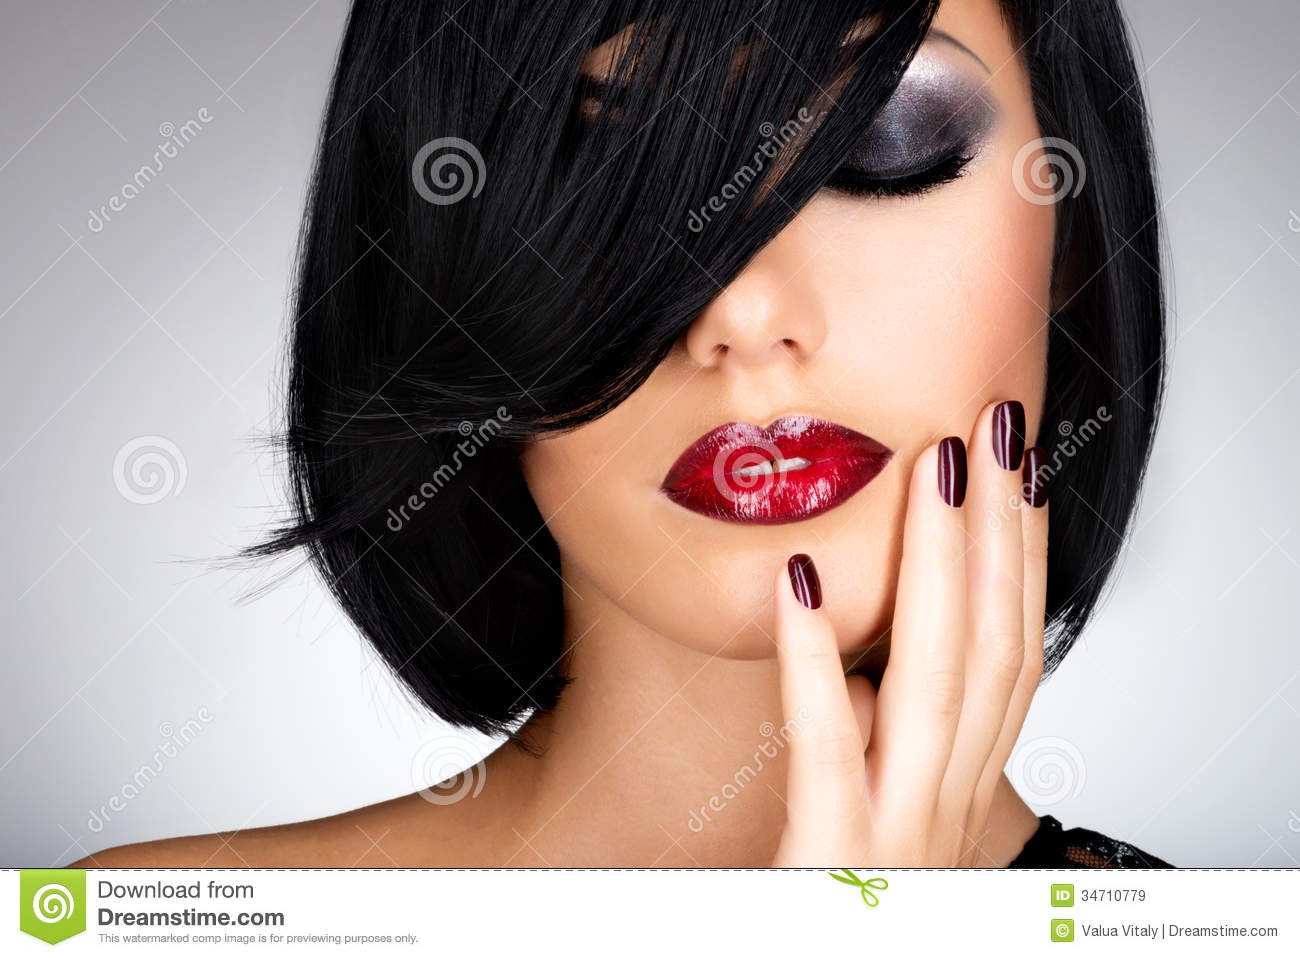 Face of a woman with beautiful dark nails and red lips